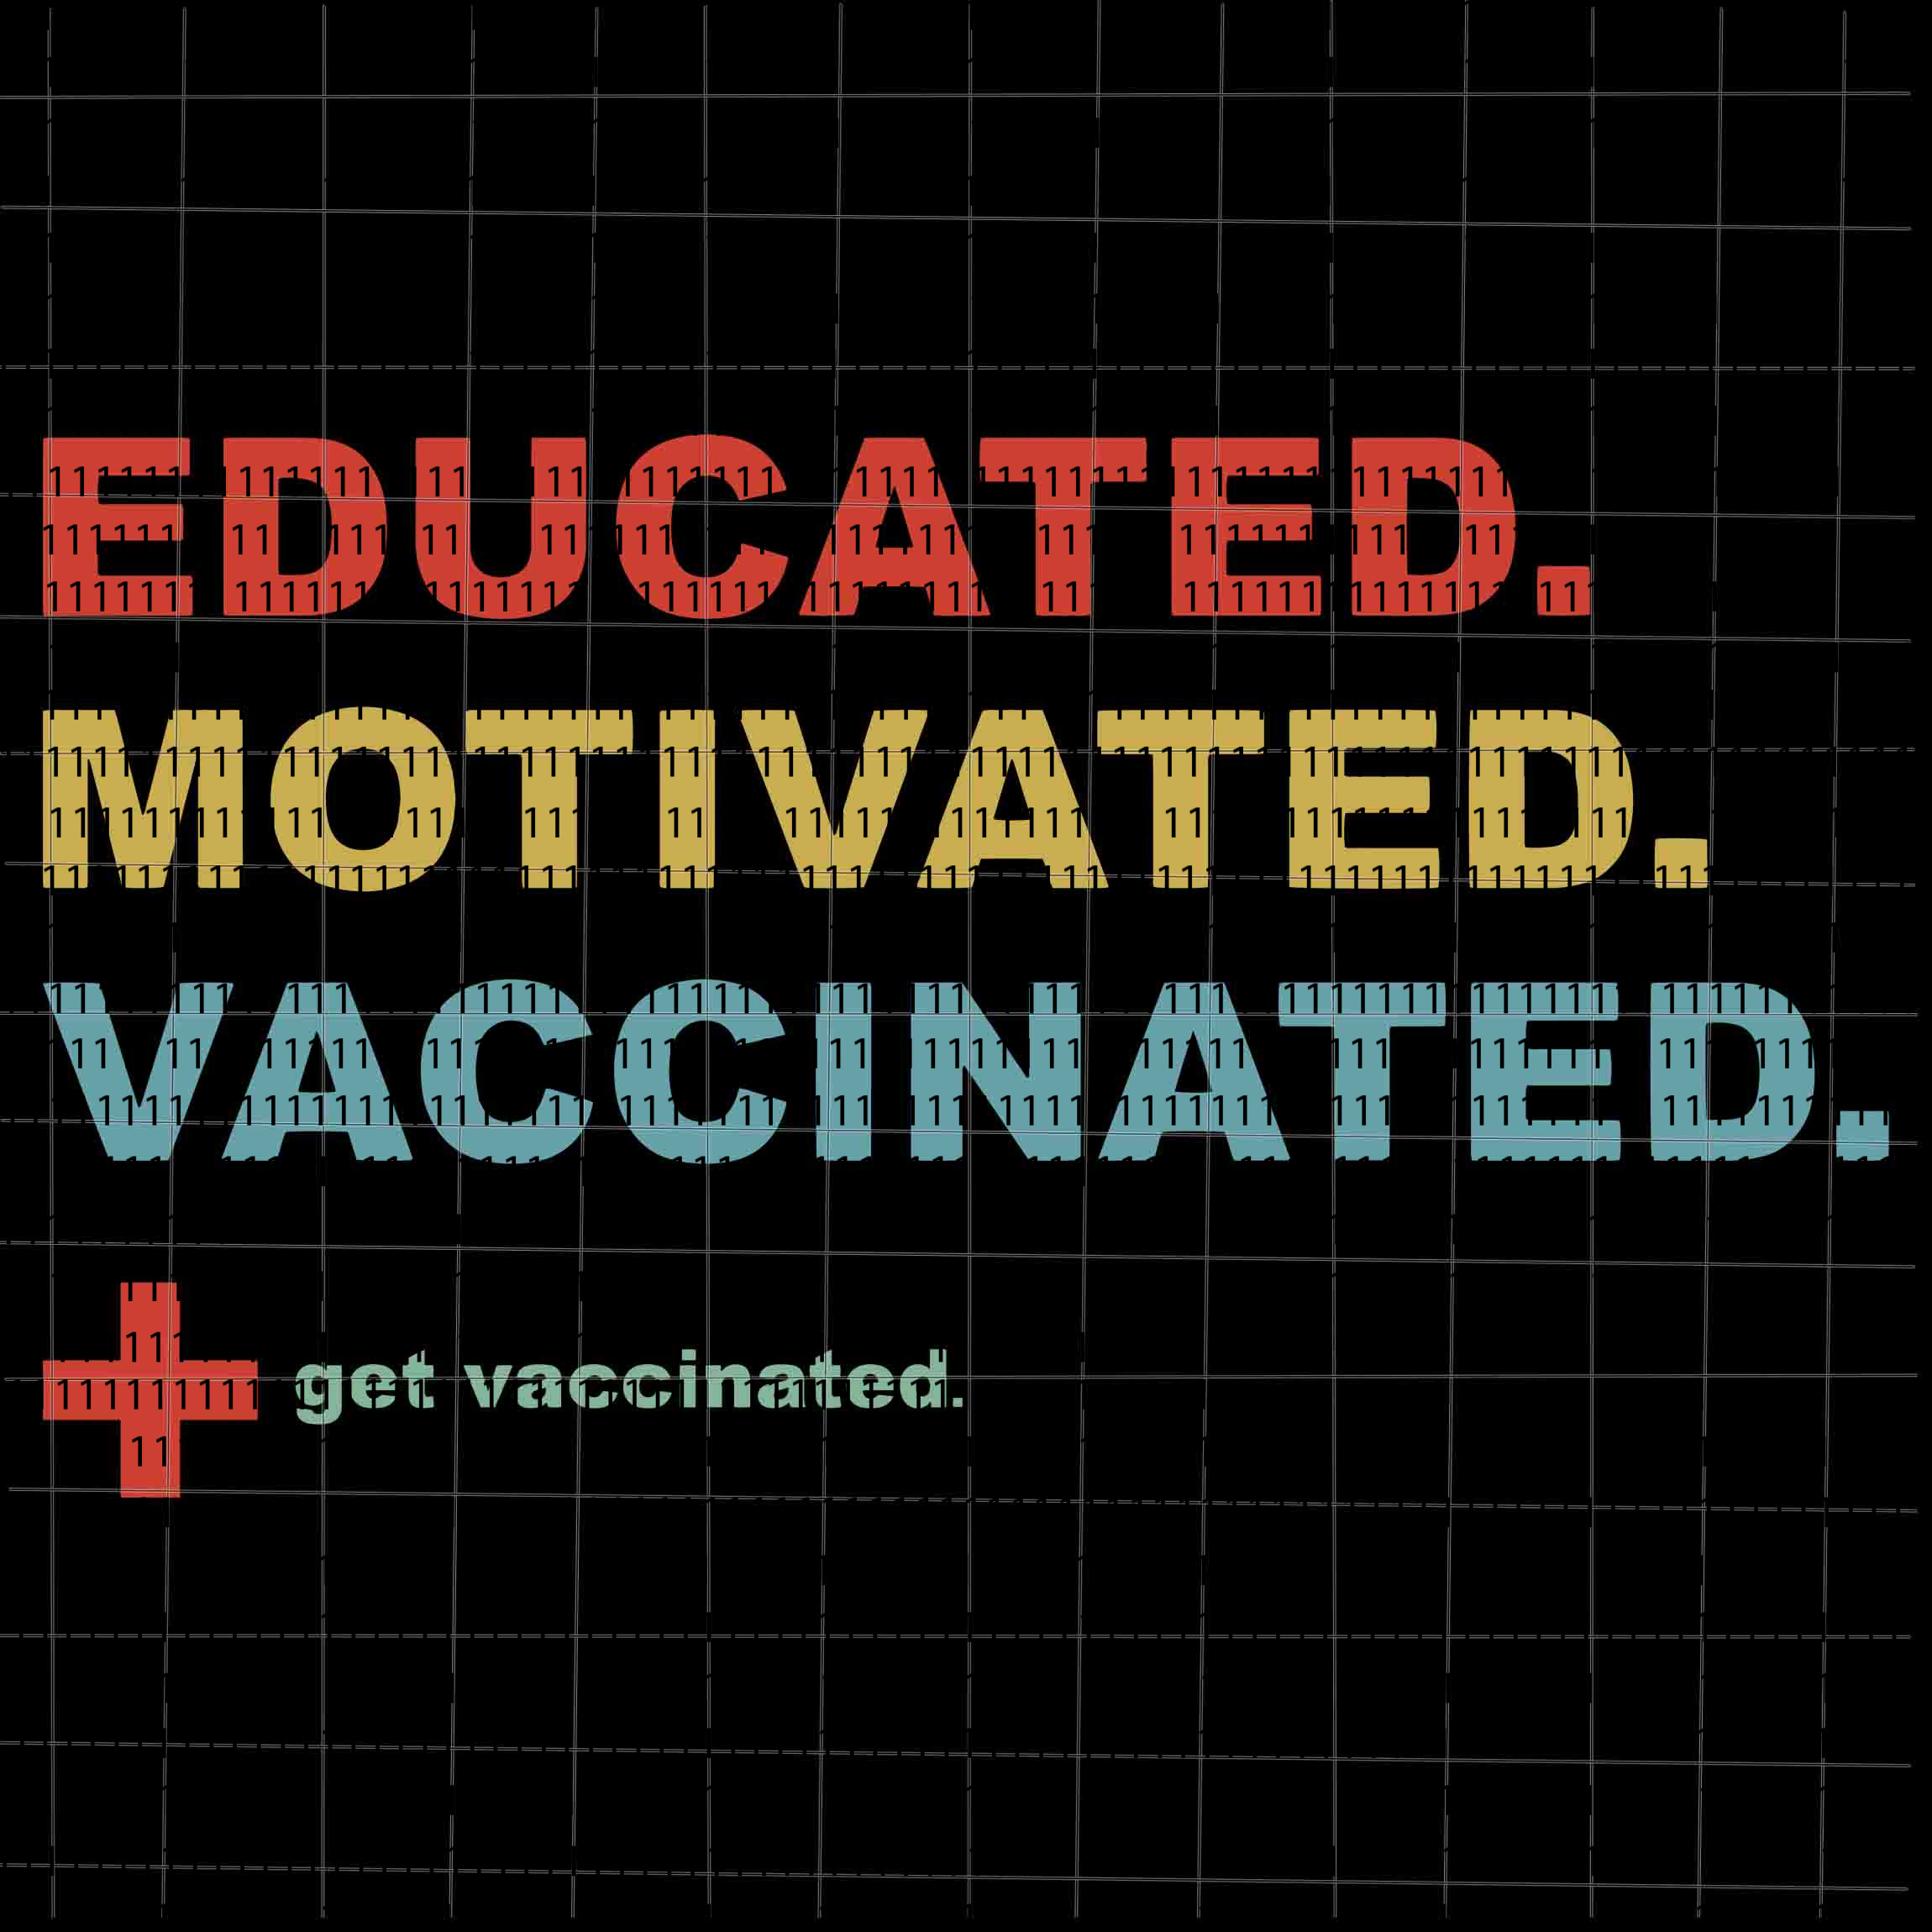 Vaccinated Motivated Vaccinated svg, Get Vaccinated svg, Vaccinated Vaccine Pro